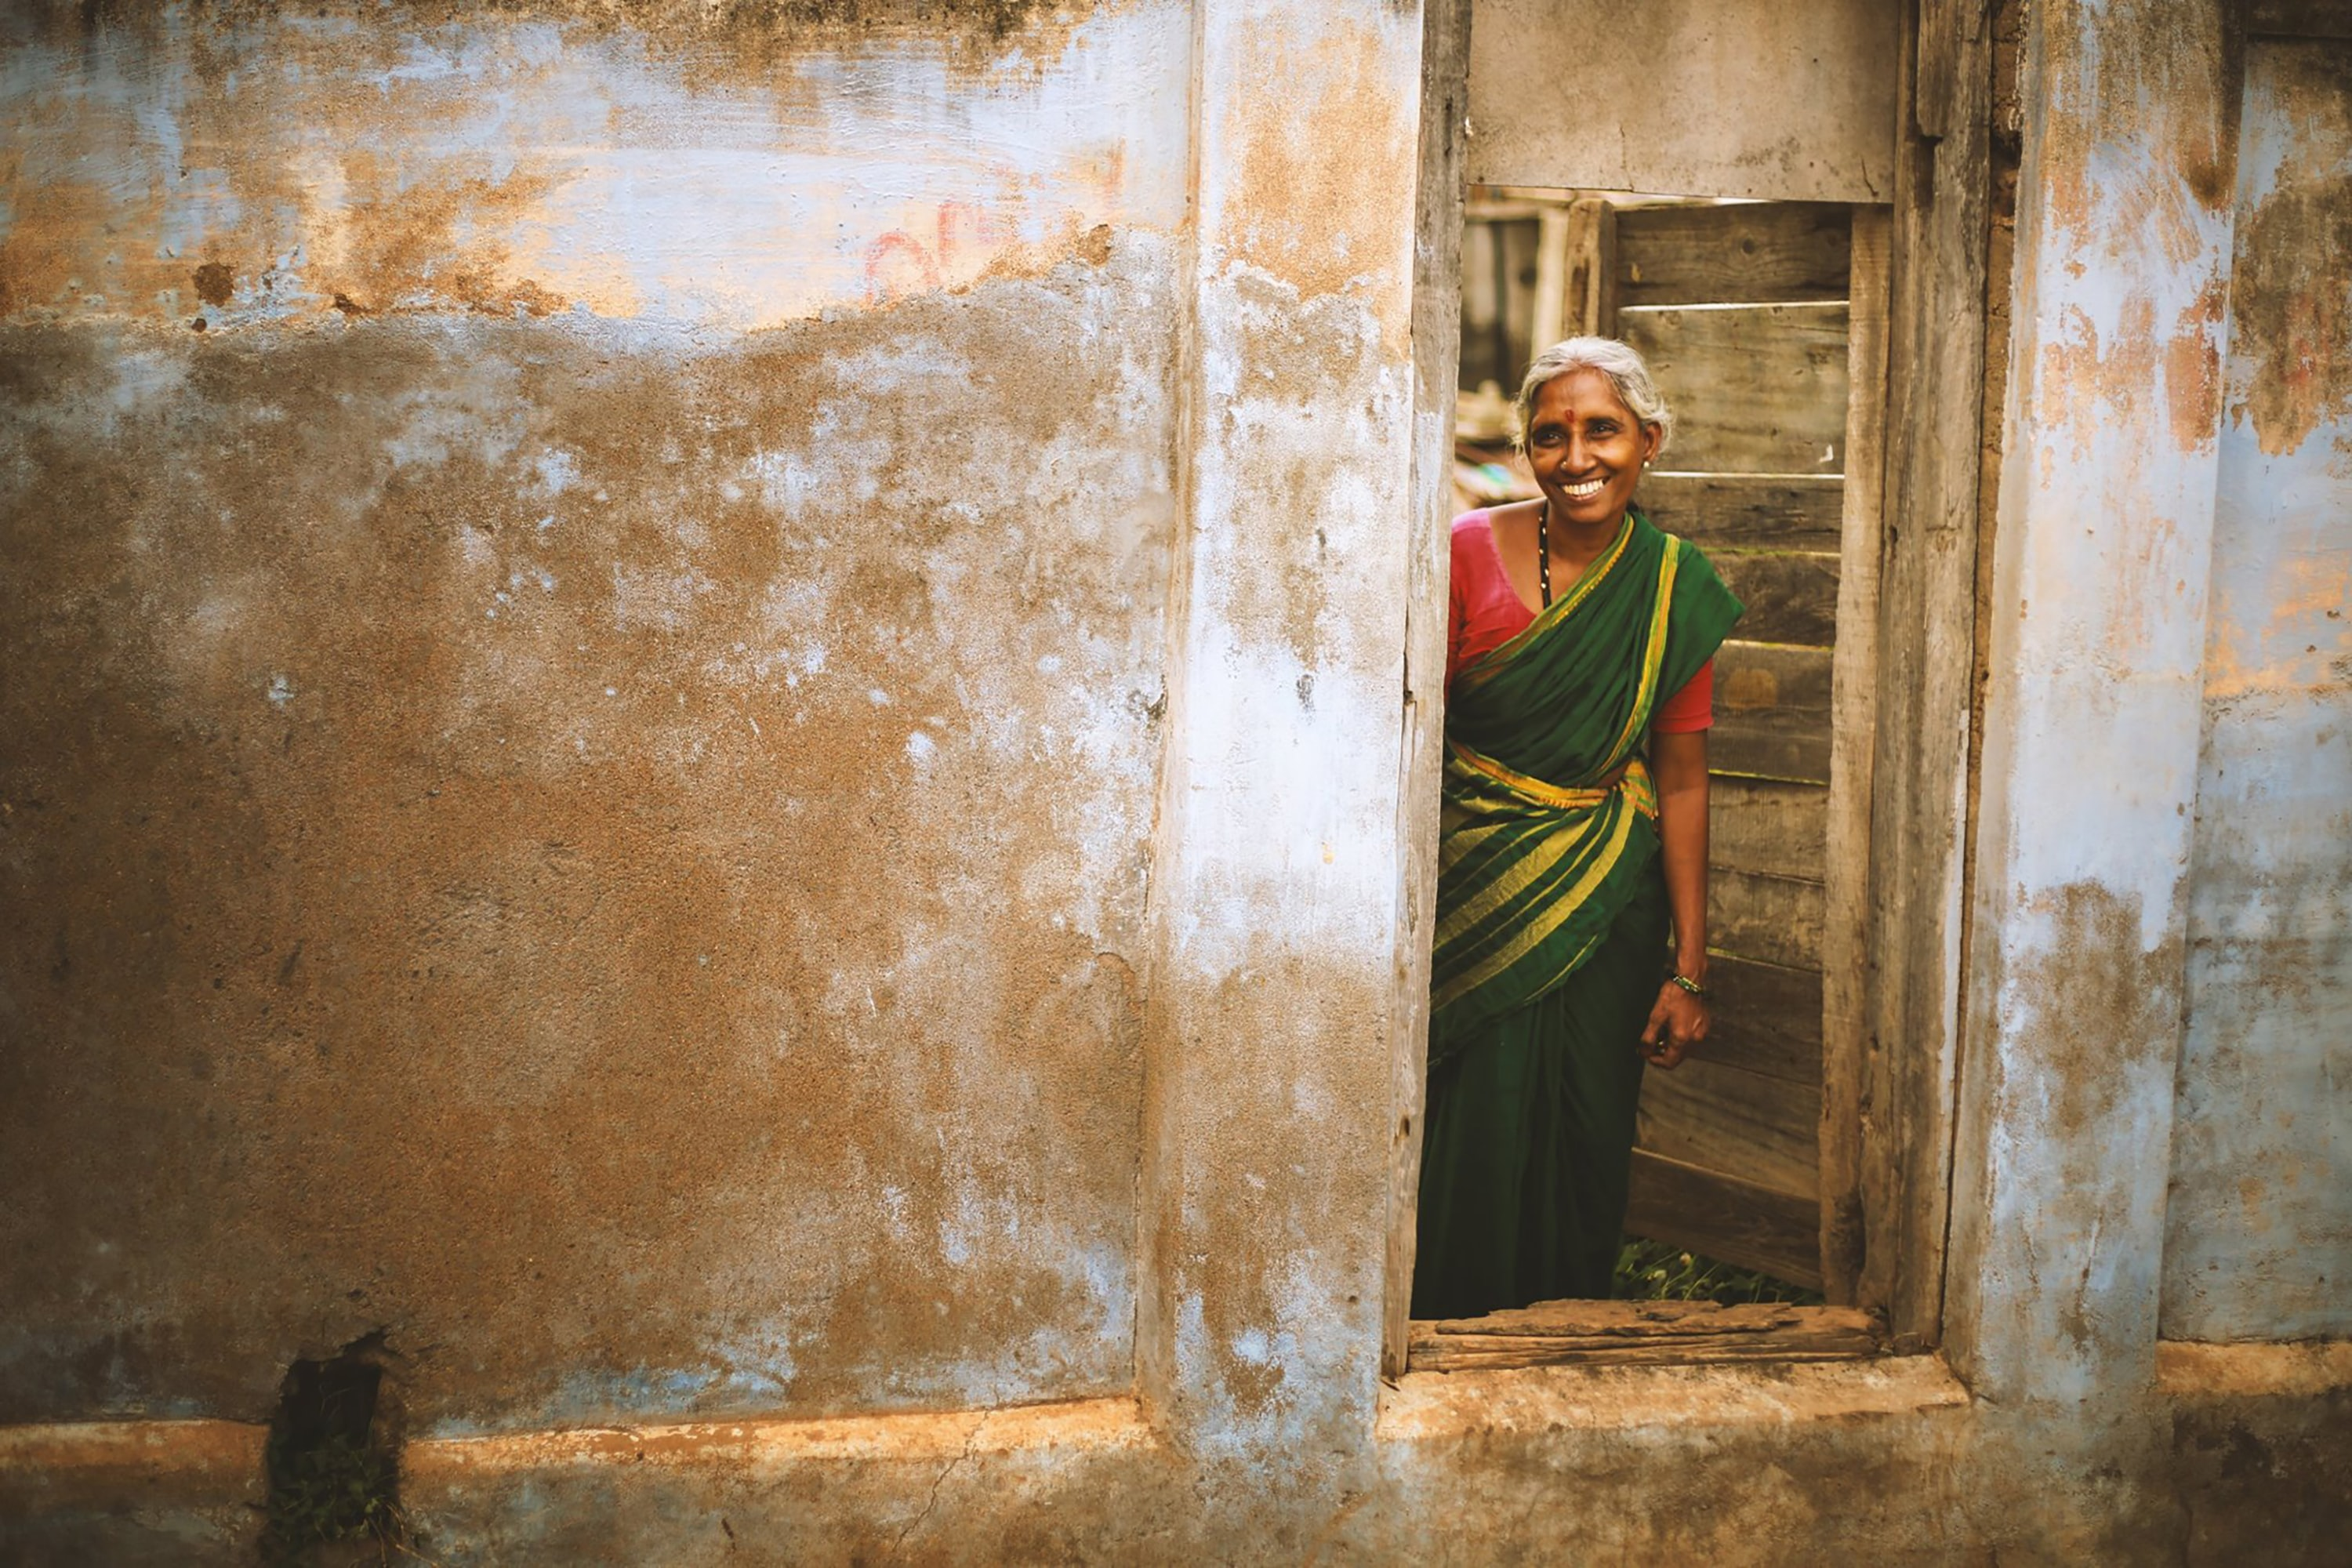 smiling woman wearing sari standing near door